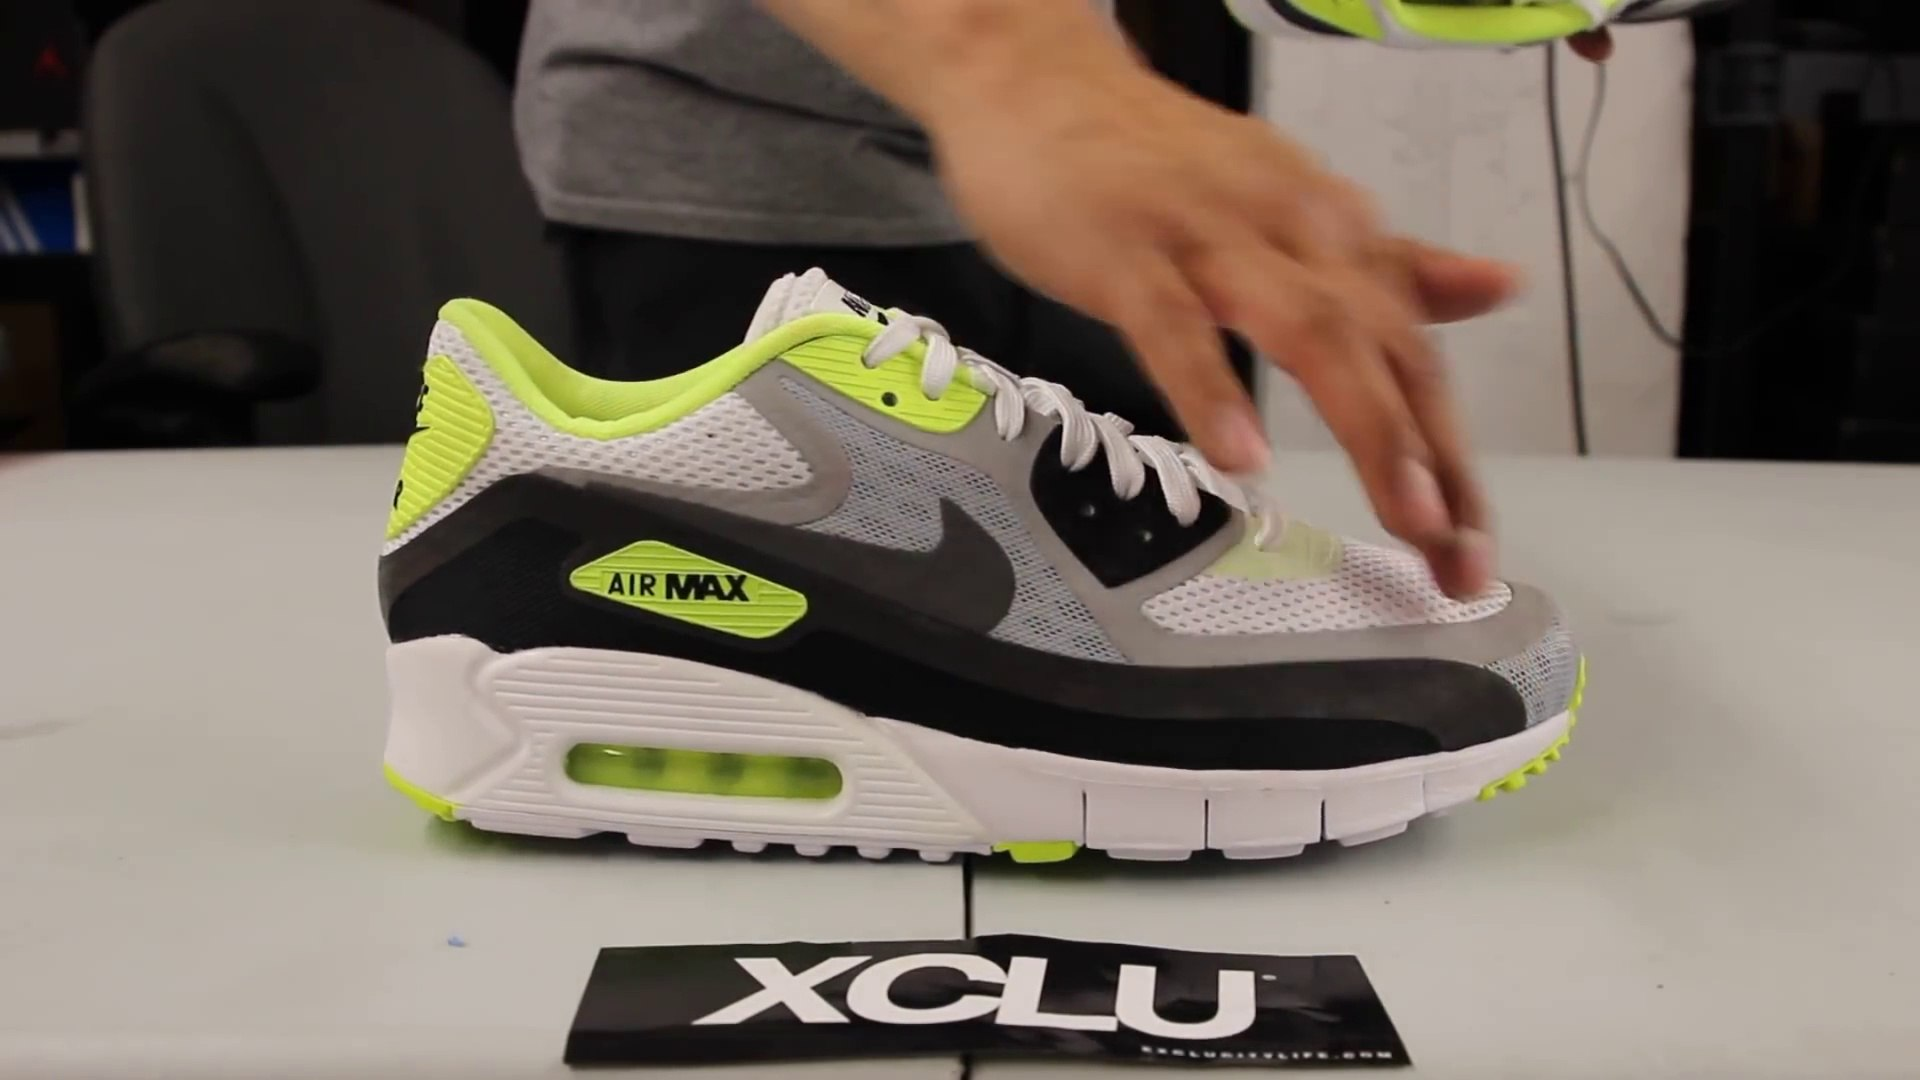 wombazaar Nike Air Max 90 Breath Volt Unboxing Video at Exclucity